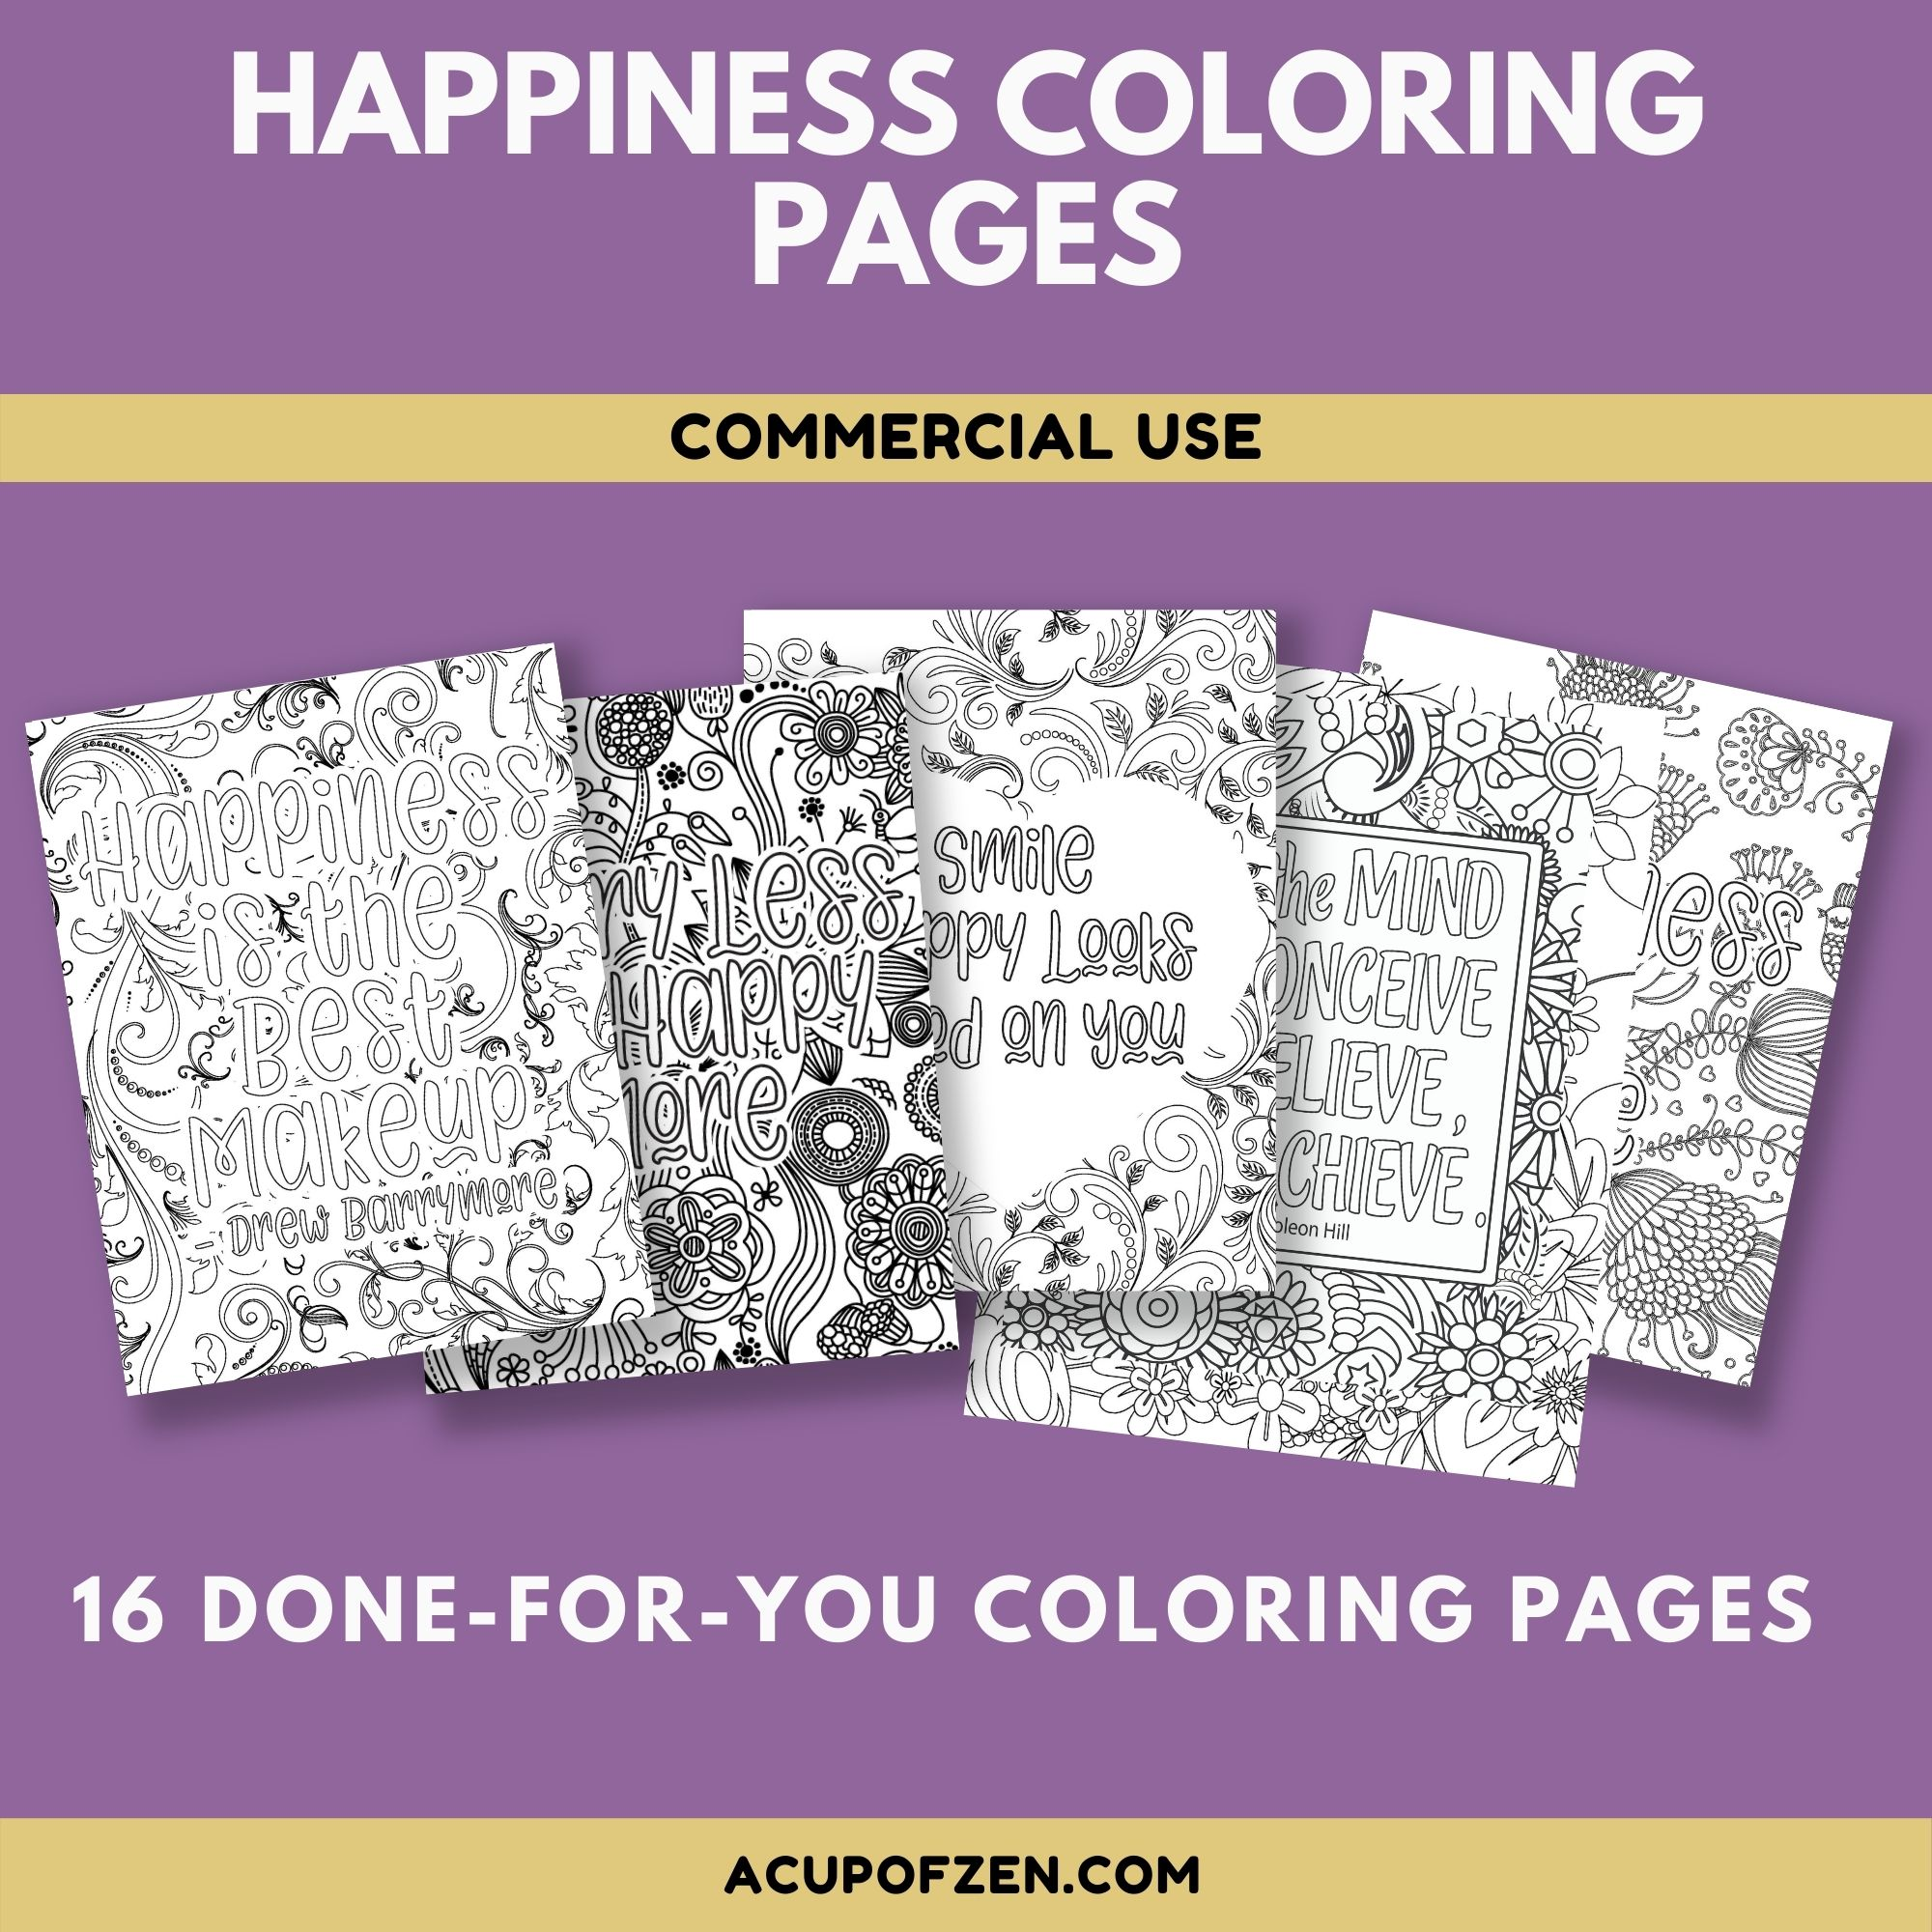 Happiness Coloring Pages